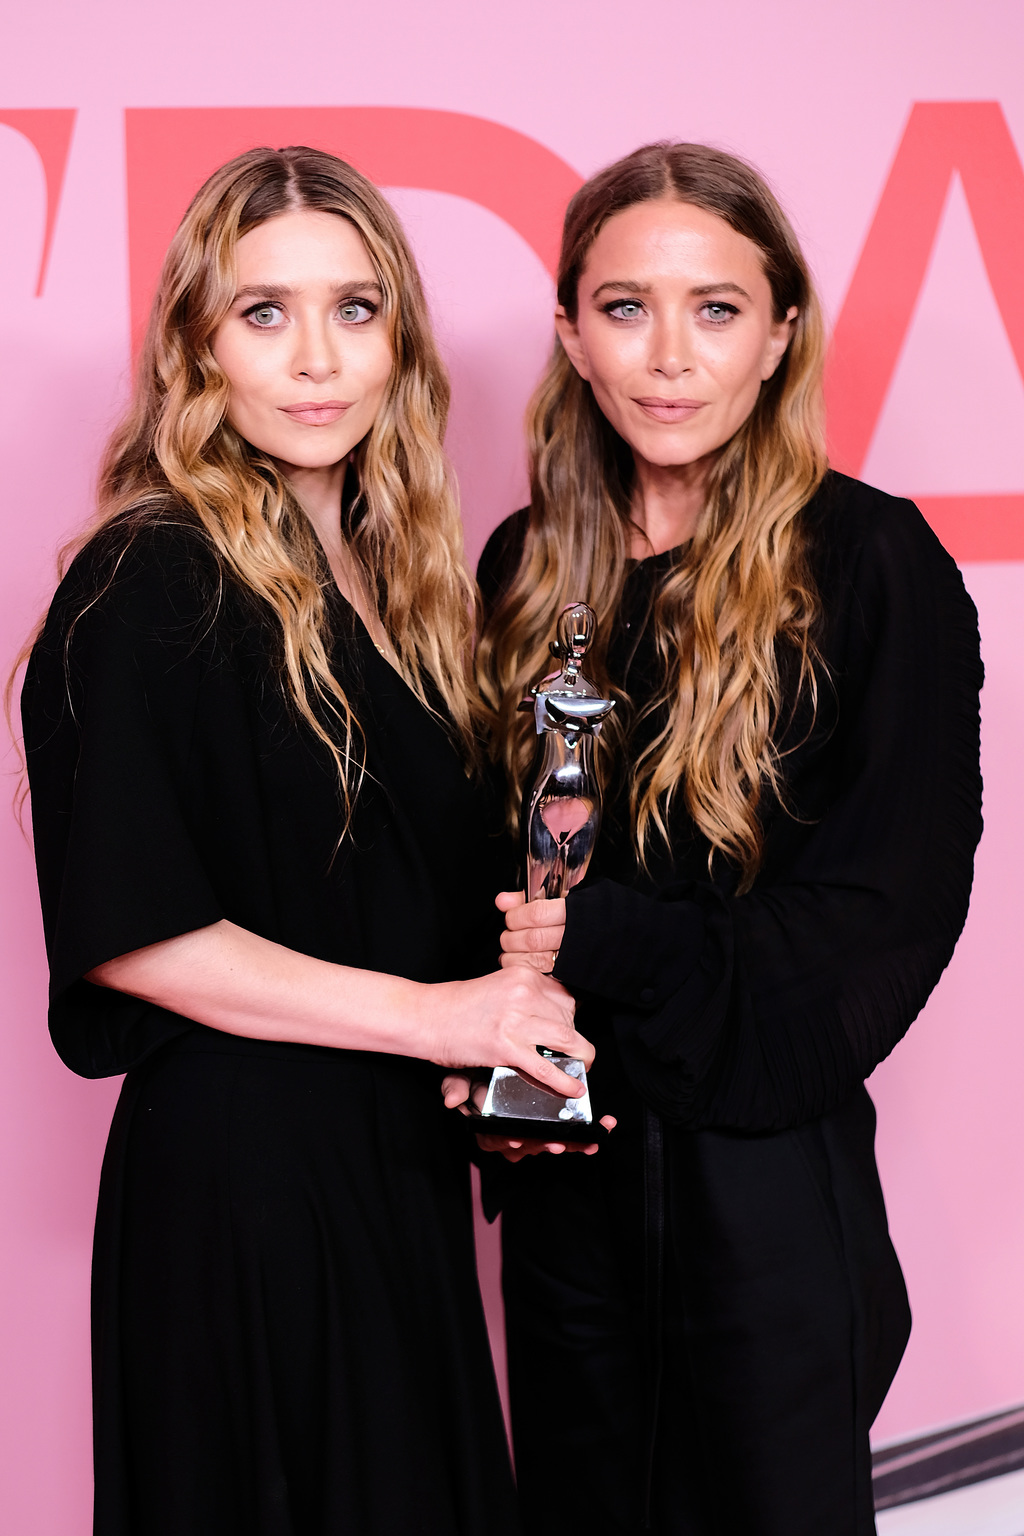 Mary-Kate és Ashley Olsen (Fotó: Getty Images/Dimitrios Kambouris)